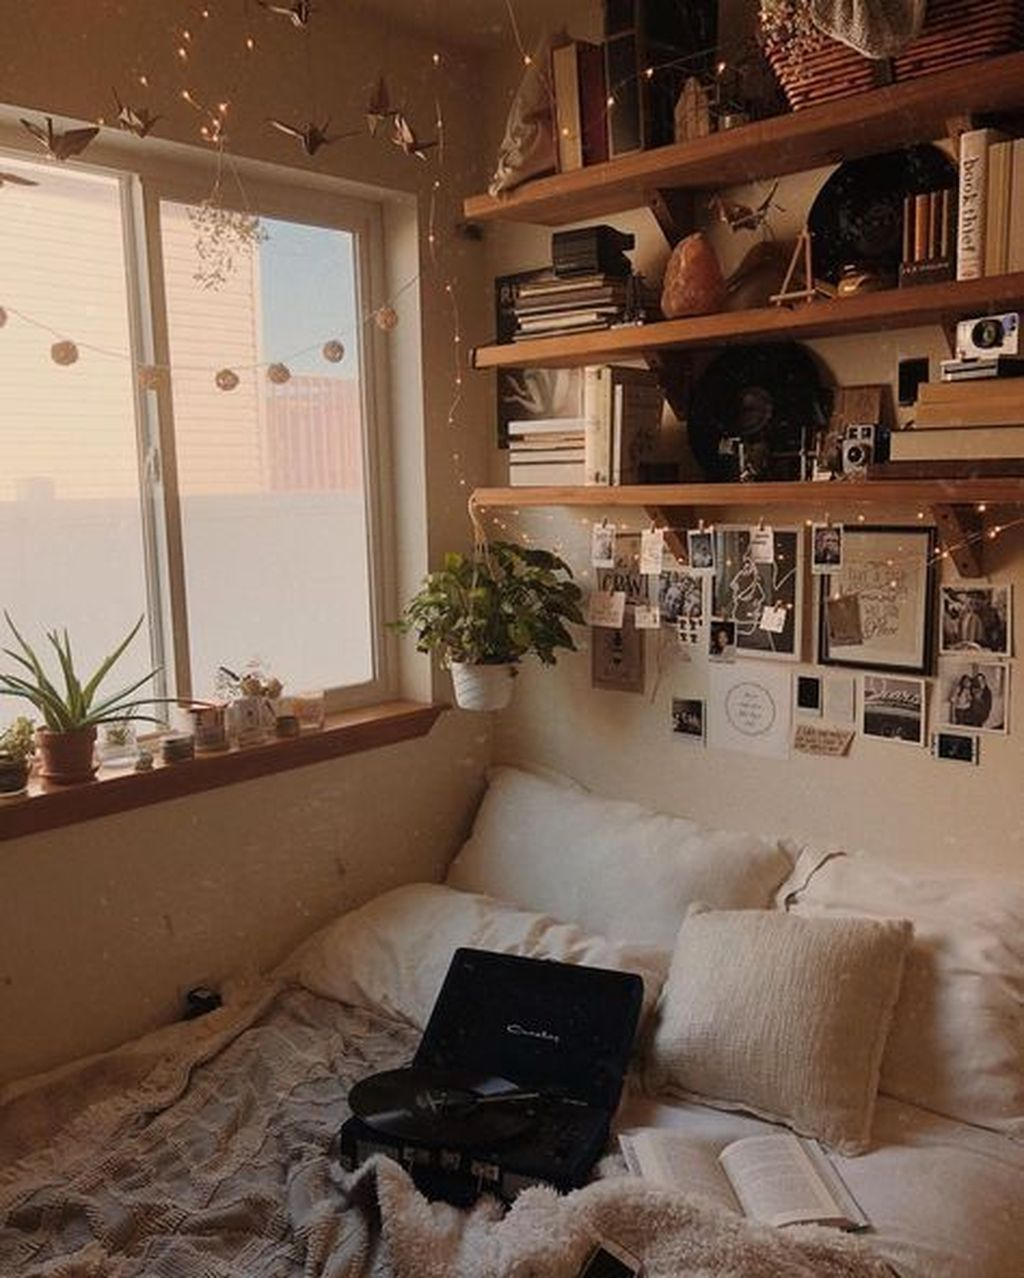 47 Charming Diy Dorm Room Decorating Ideas On A Budget